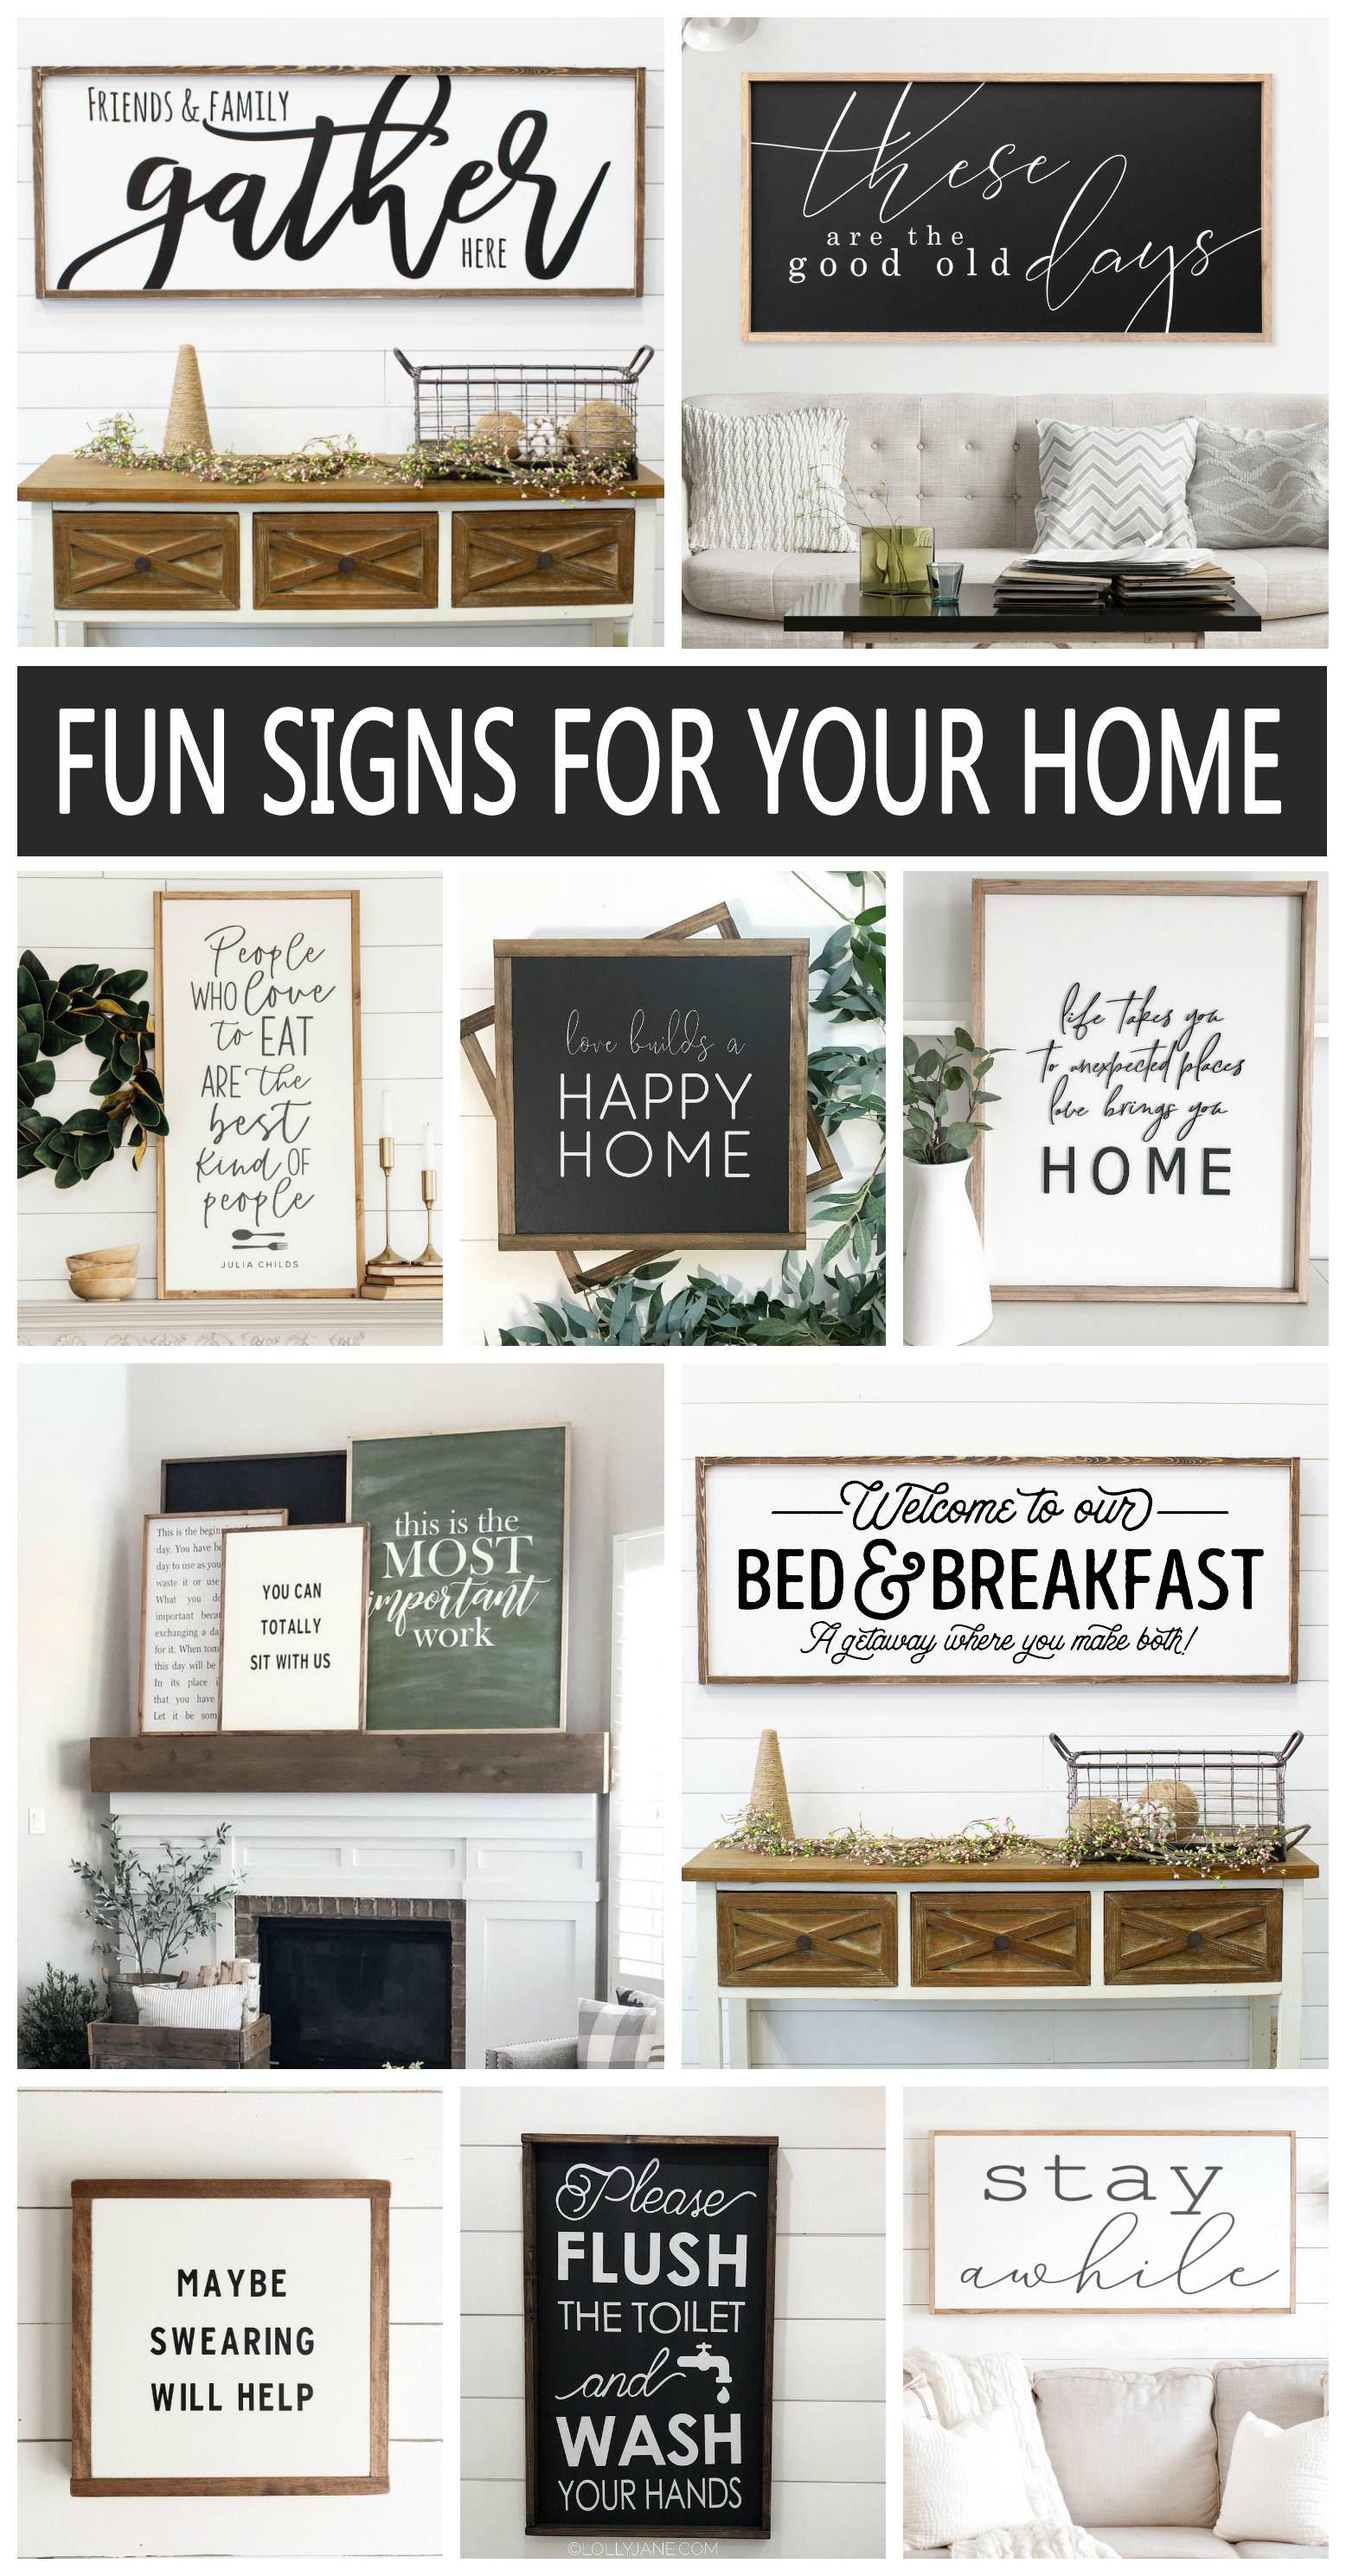 Fun Wood Signs for your Home! Love the look of homemade wood signs as part of my home decor.